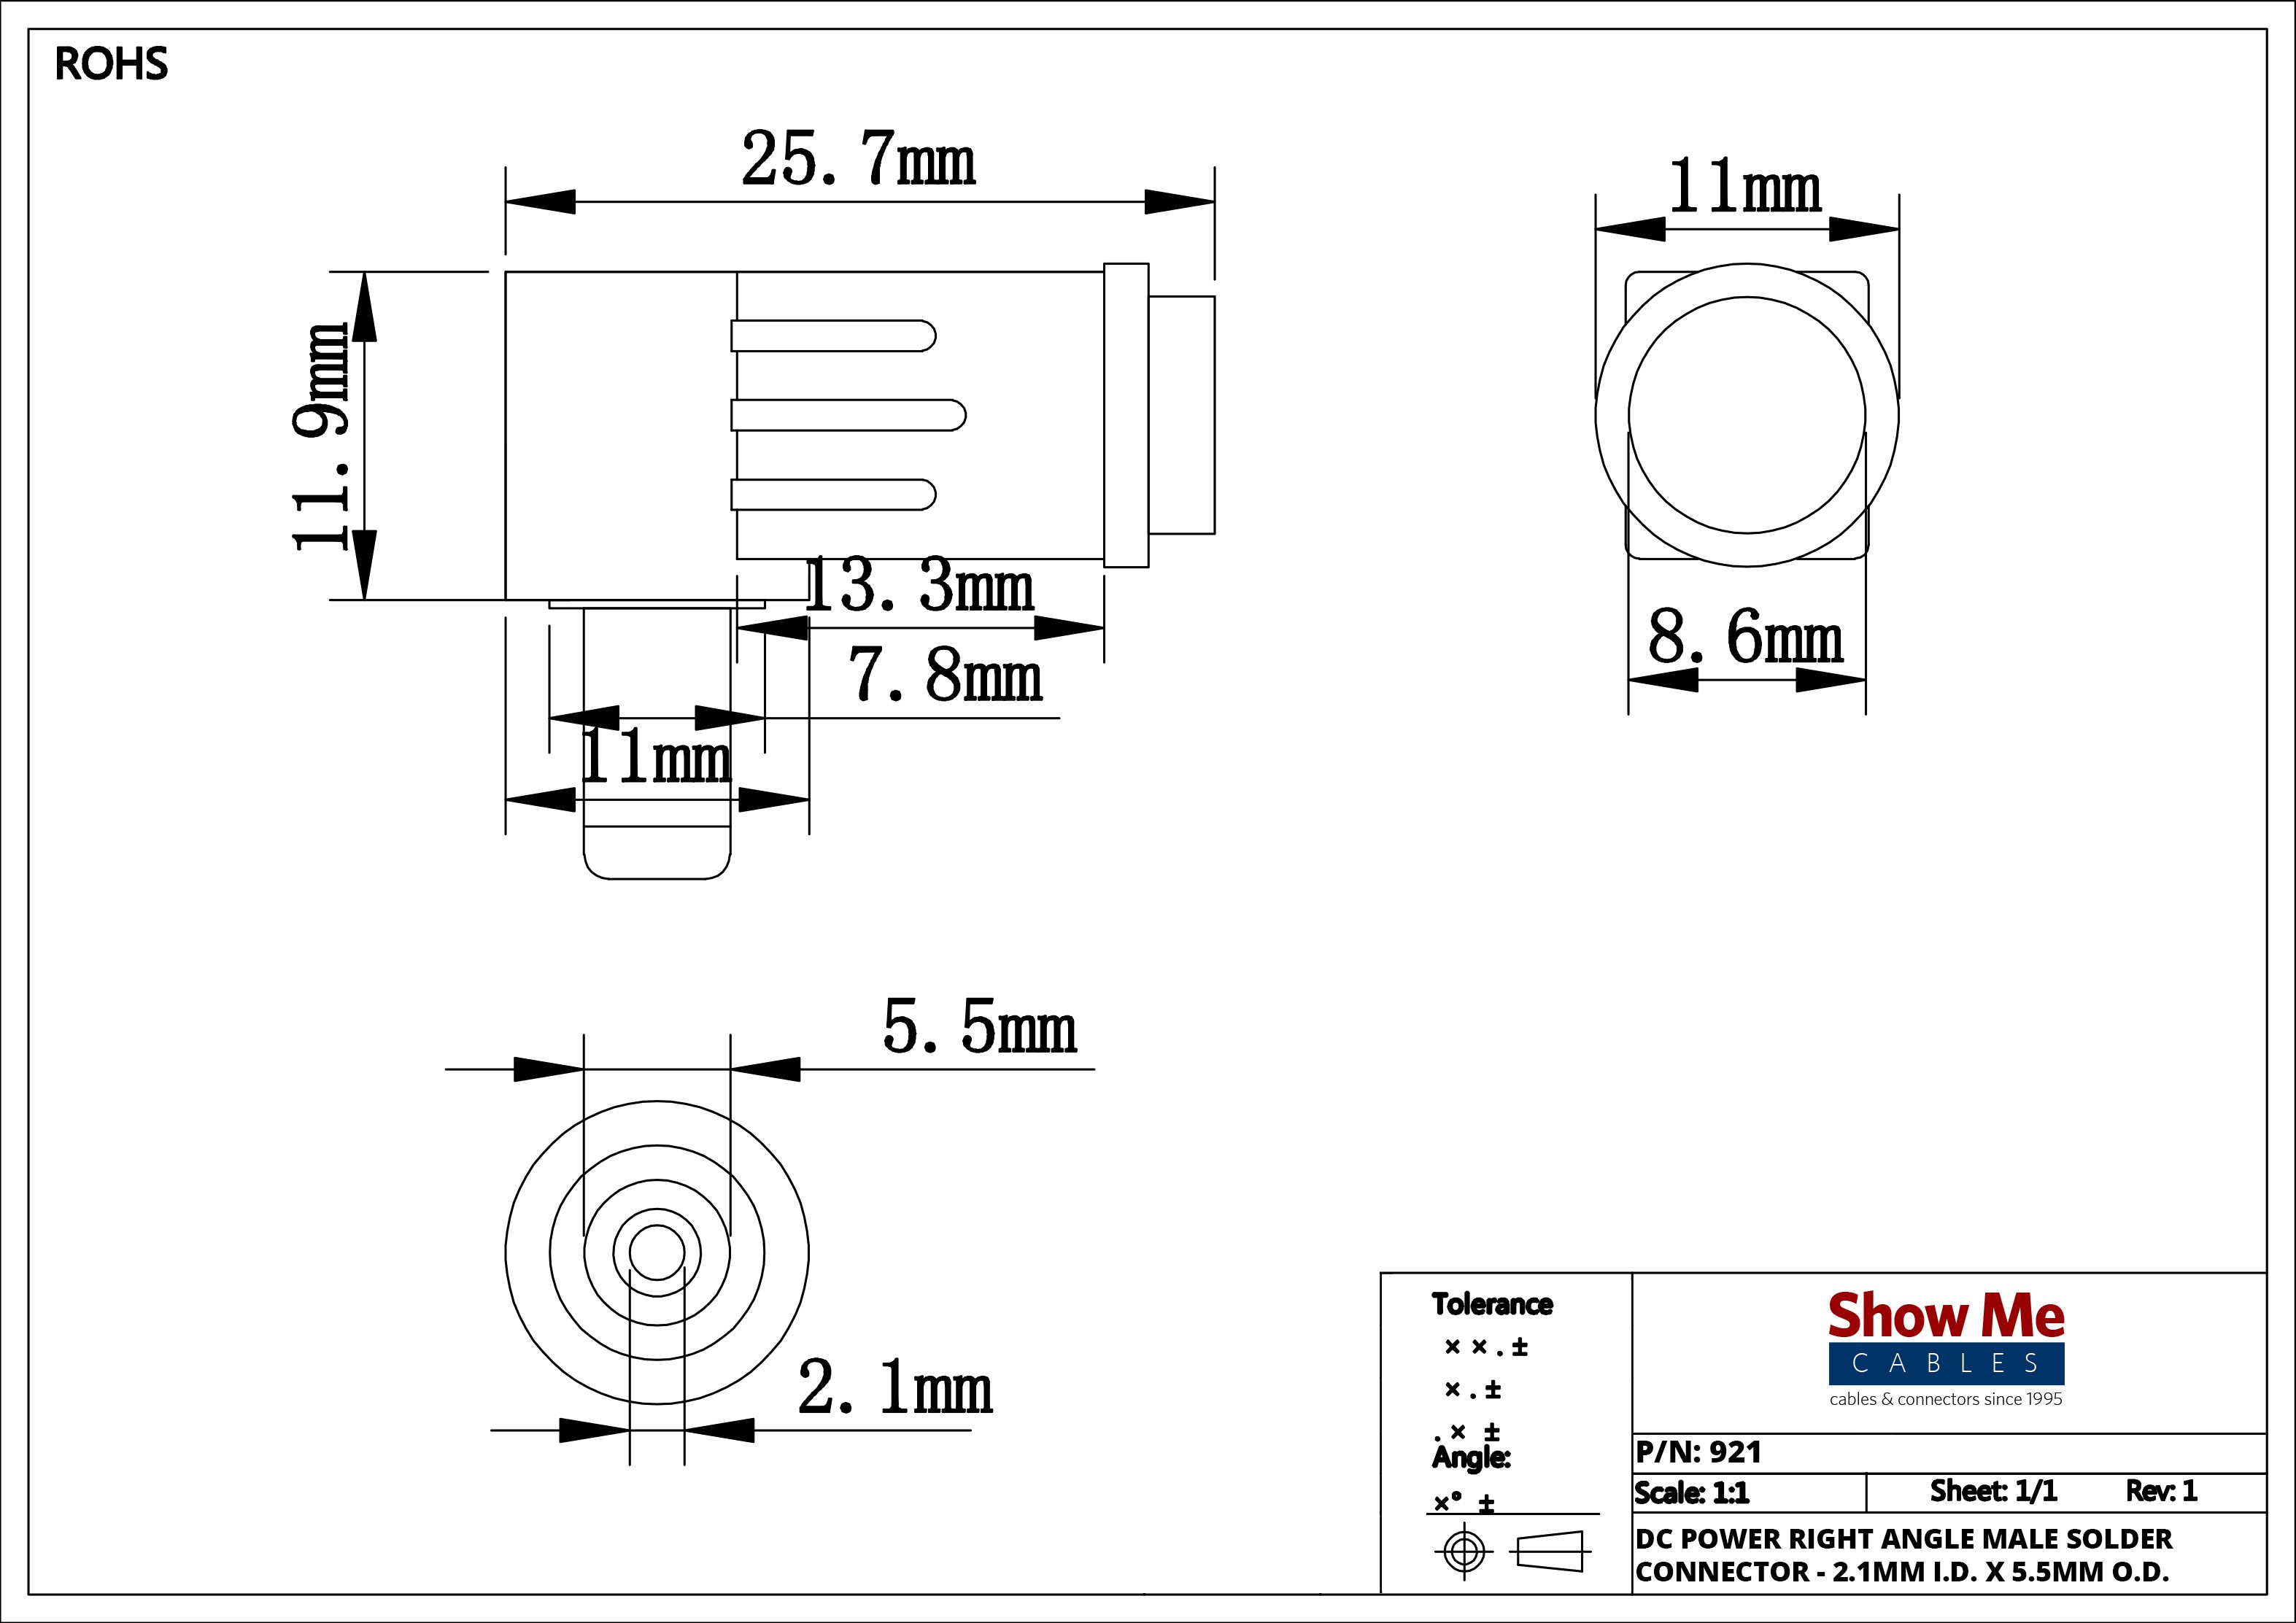 home speaker wiring diagram Download-home speaker wiring diagram Collection 3 5 Mm Stereo Jack Wiring Diagram Elegant 2 5mm DOWNLOAD Wiring Diagram Detail Name home speaker 11-a